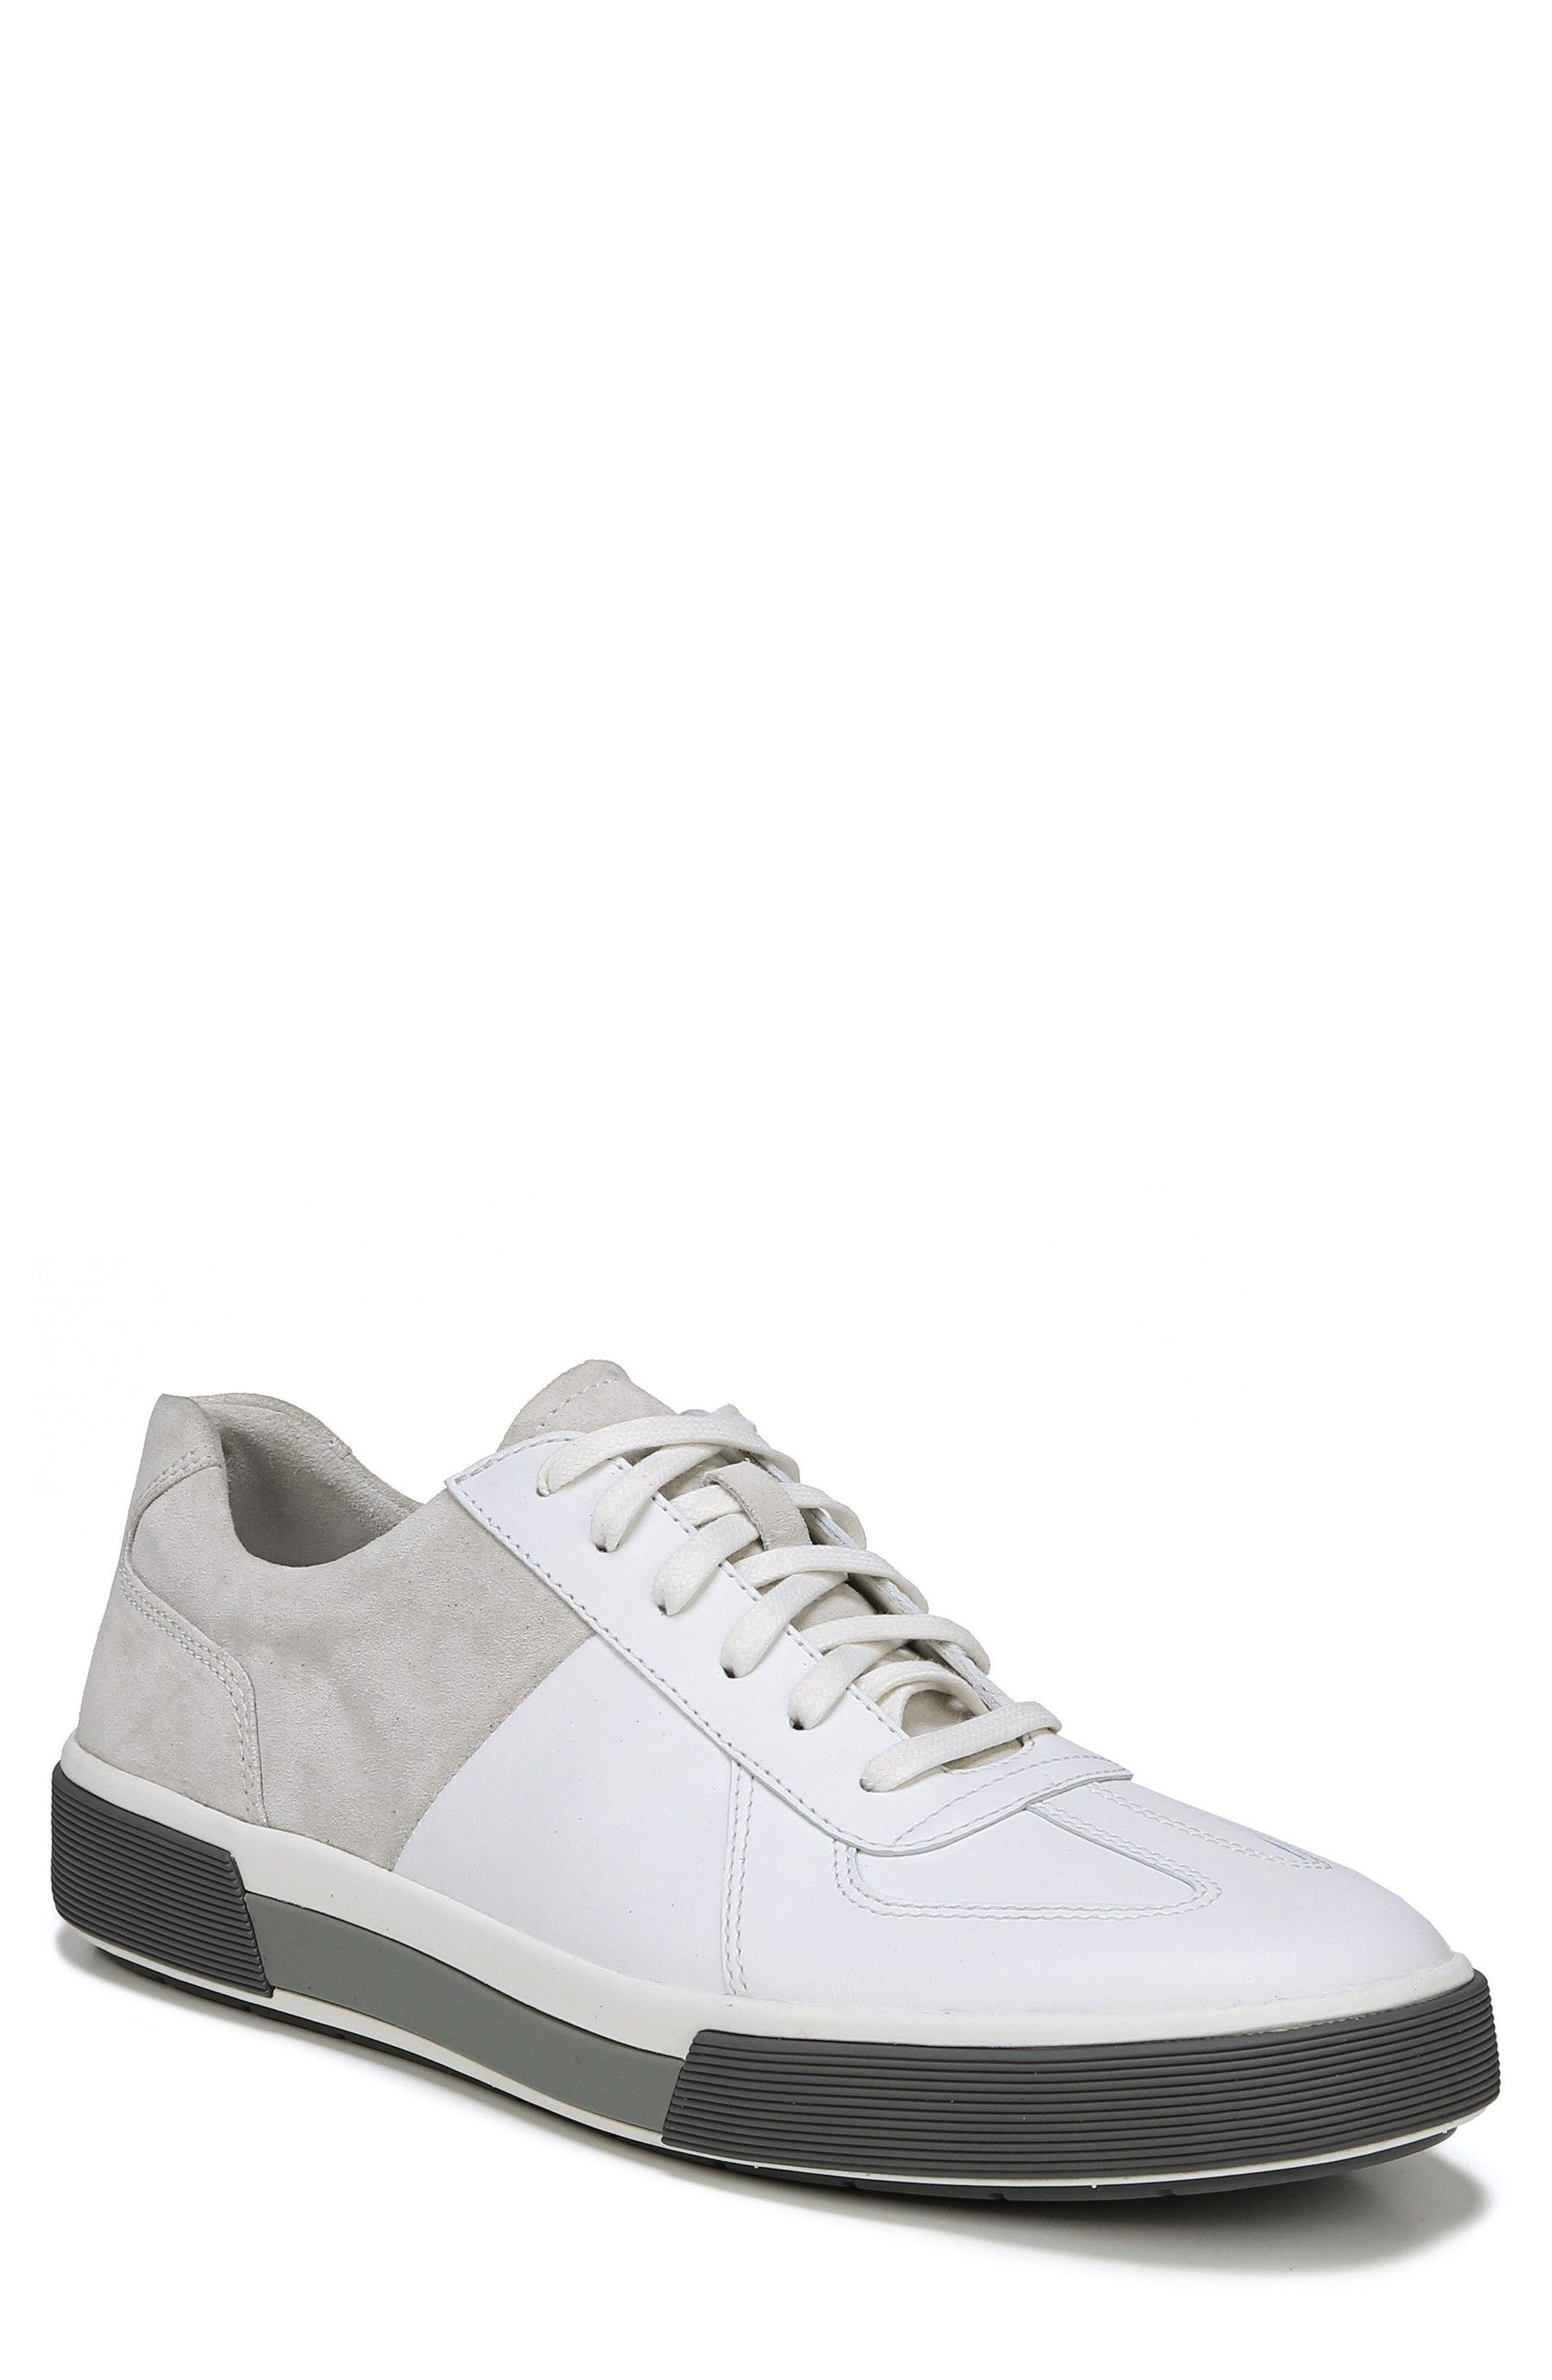 Rogue Low Top Sneaker,                             Main thumbnail 1, color,                             WHITE/ HORCHATA